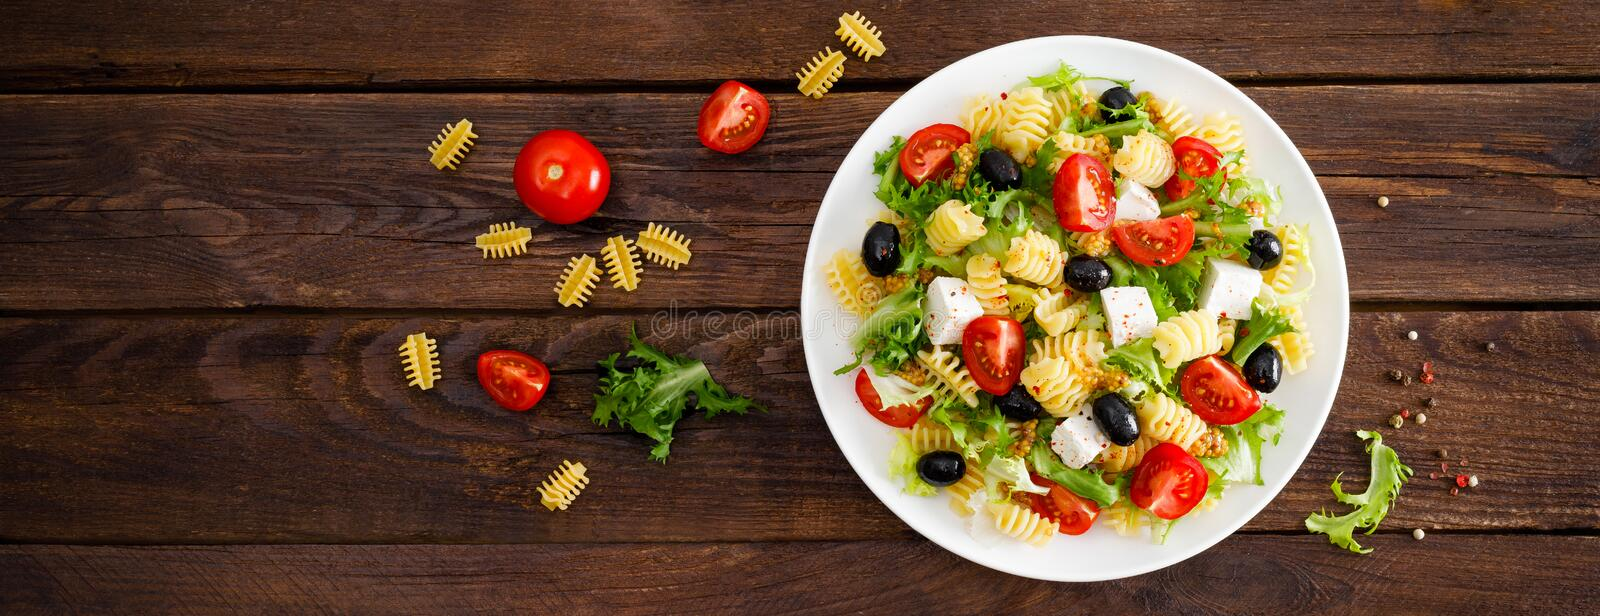 Italian pasta salad with fresh tomato, cheese, lettuce and olives on wooden background. Mediterranean cuisine. Banner. Italian pasta salad with fresh tomato stock photos